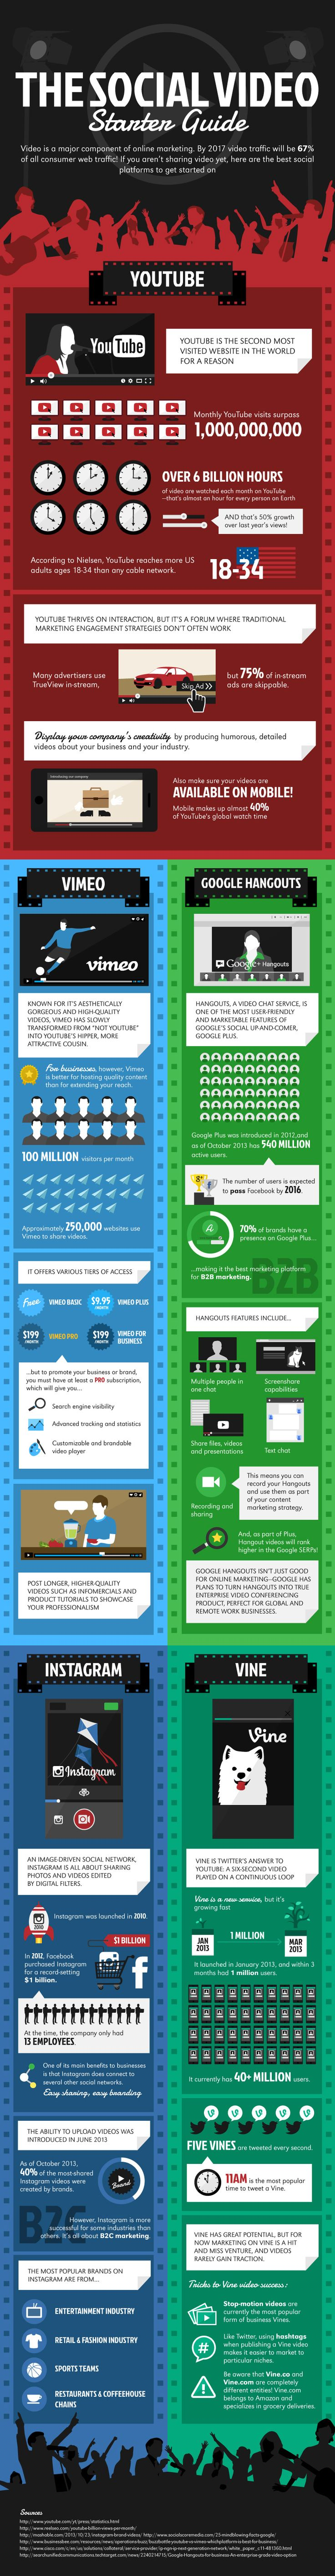 Infographie 135 - Social media video starter guide